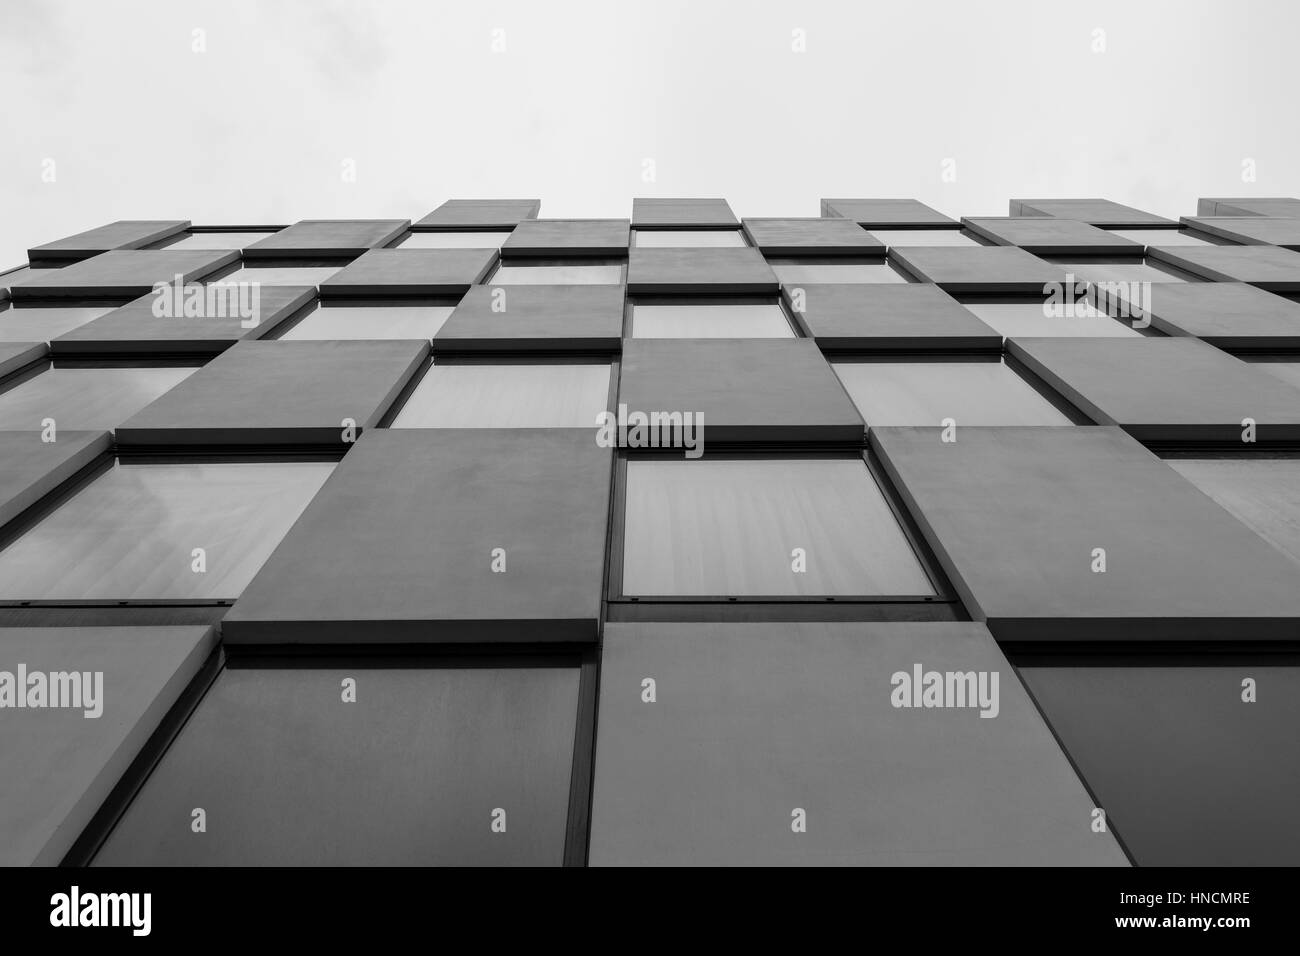 Urban Geometry, looking up to glass and concrete building. Modern architecture black and white, glass and steel. - Stock Image